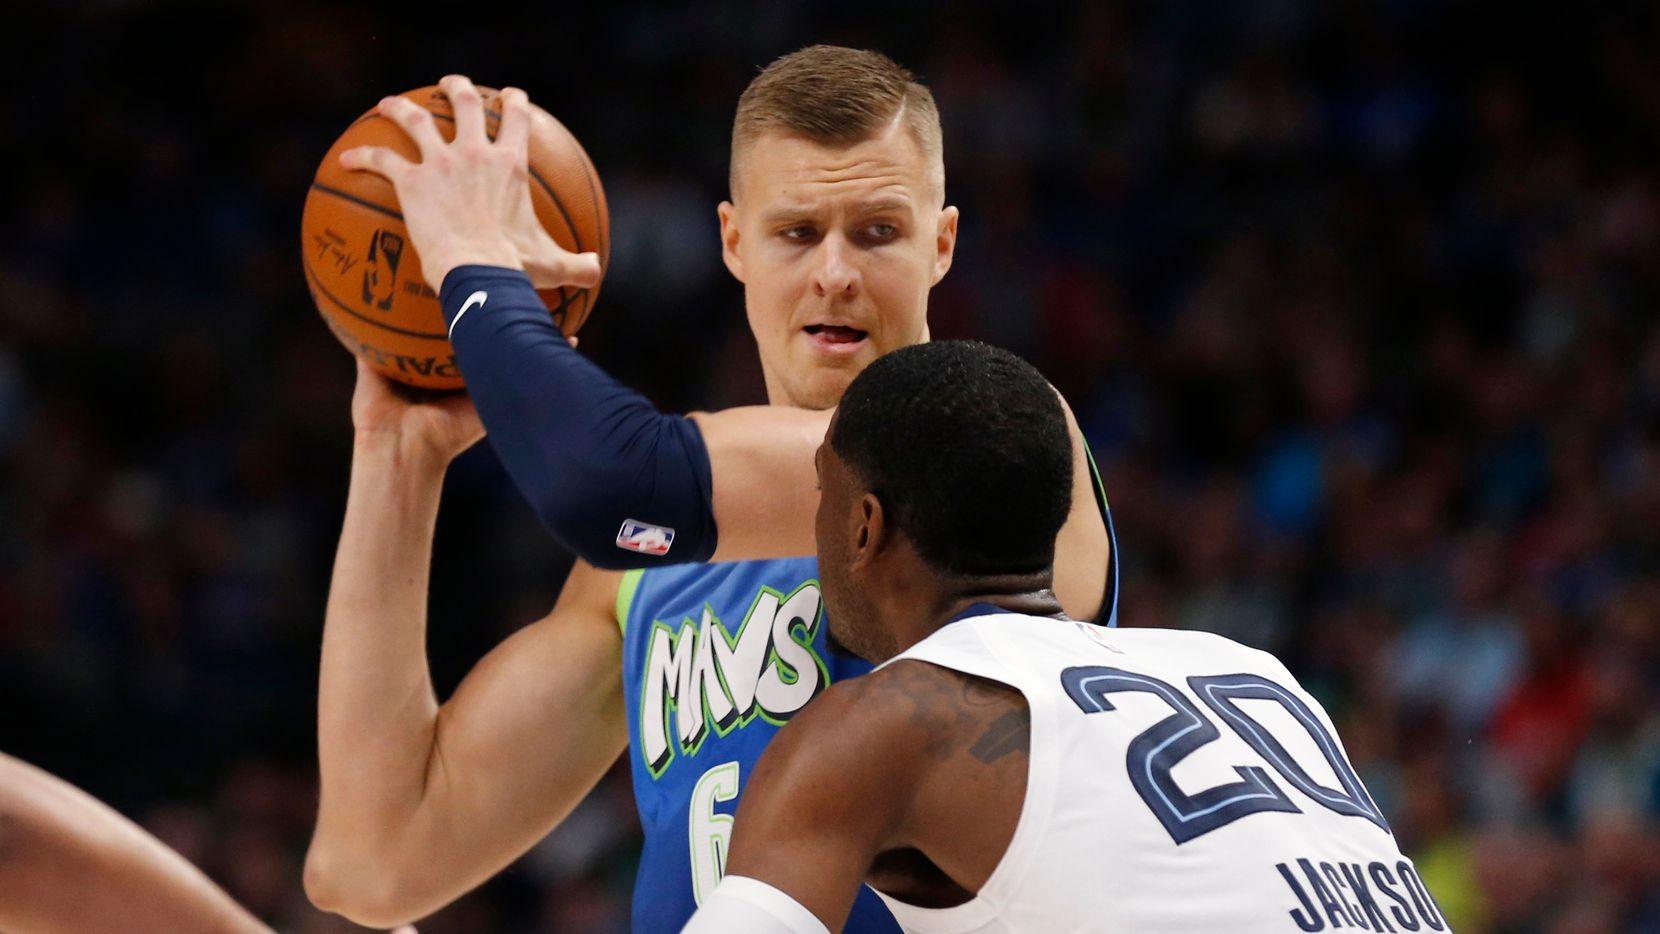 Dallas Mavericks forward Kristaps Porzingis (6) looks back as Memphis Grizzlies guard Josh Jackson (20) defends during the second half of play at American Airlines Center in Dallas on Friday, March 6, 2020. Dallas Mavericks defeated the Memphis Grizzlies 121-96.